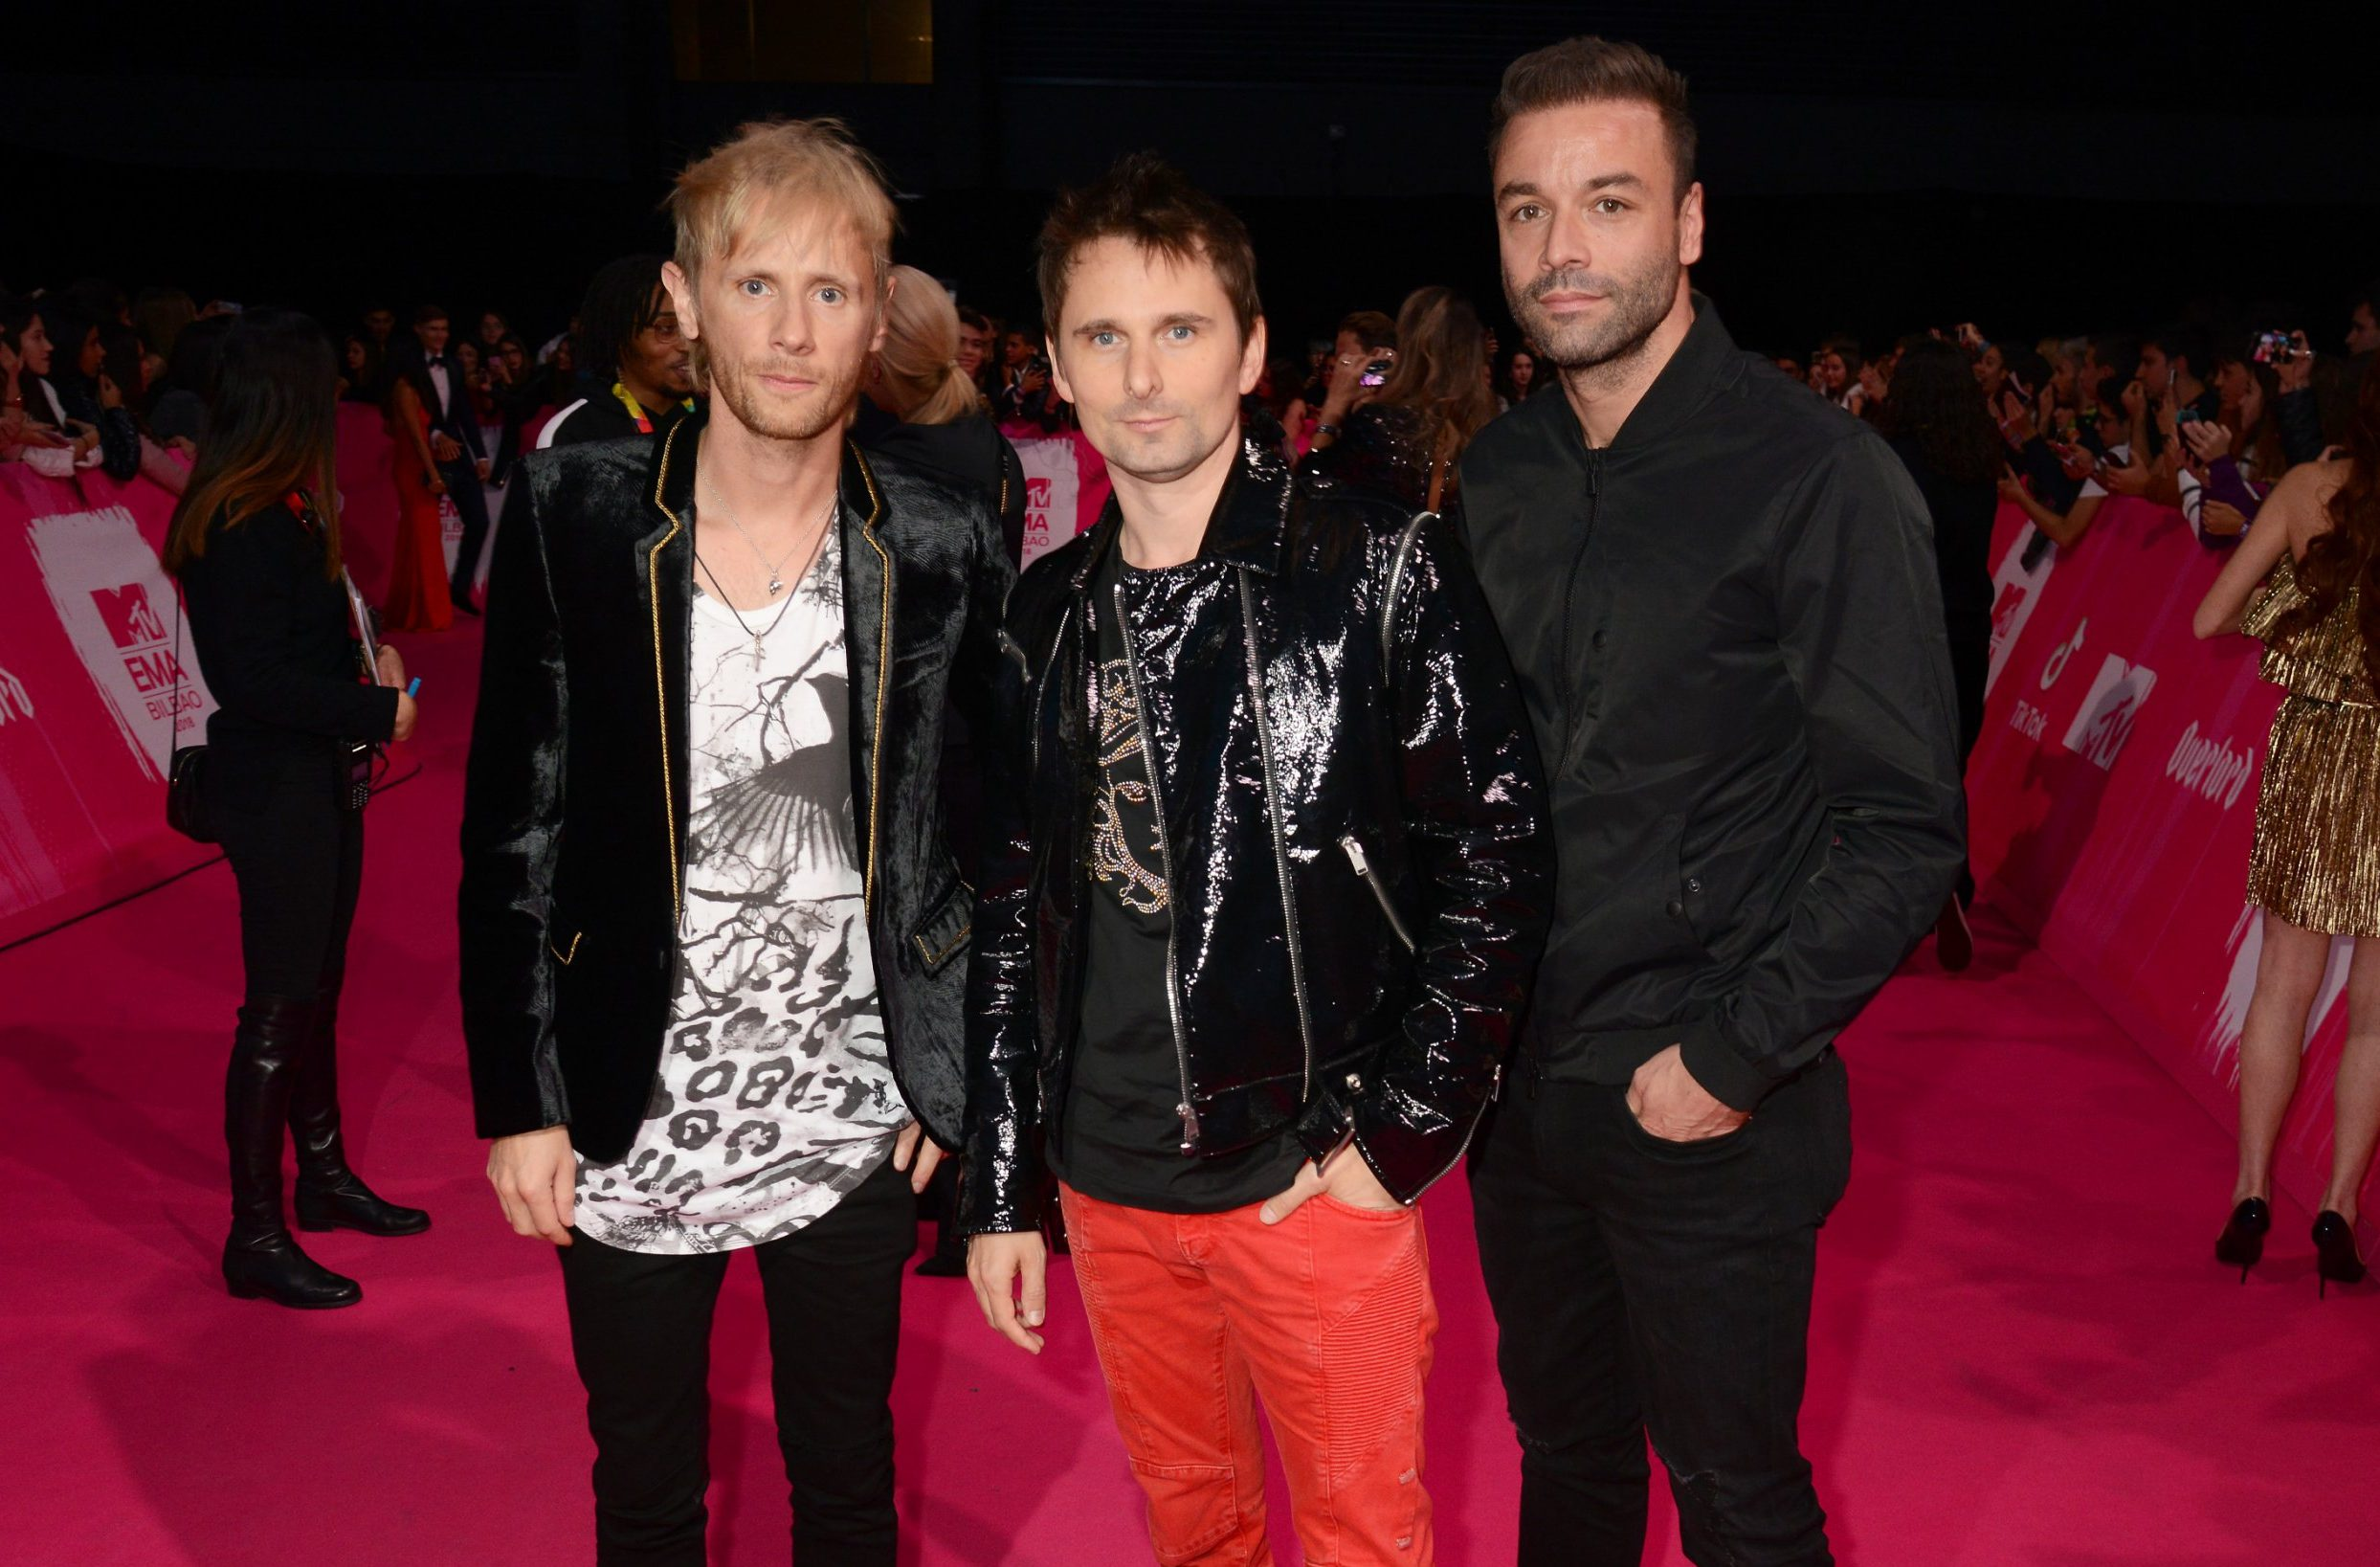 BILBAO, SPAIN - NOVEMBER 04: (L-R) Dominic Howard, Matt Bellamy and Chris Wolstenholme of Muse attend the MTV EMAs 2018 at the Bilbao Exhibition Centre (BEC) on November 04, 2018 in Bilbao, Spain. (Photo by Dave J Hogan/Dave J Hogan/Getty Images for MTV)